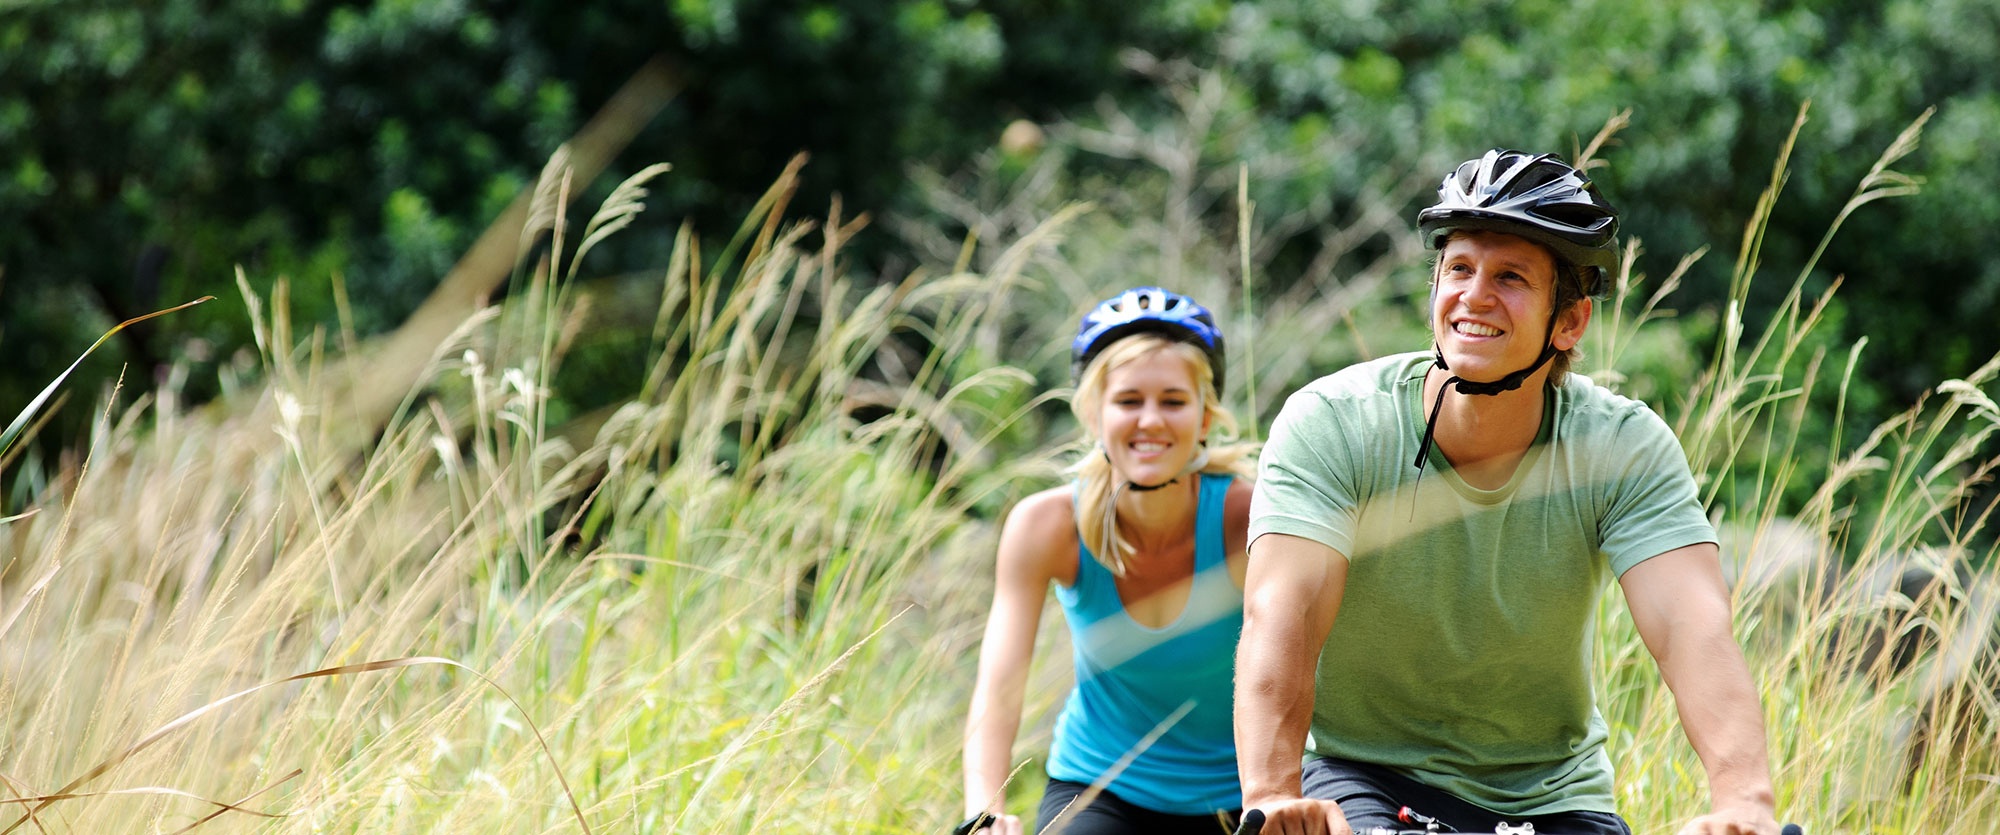 Man and woman biking through tall grass